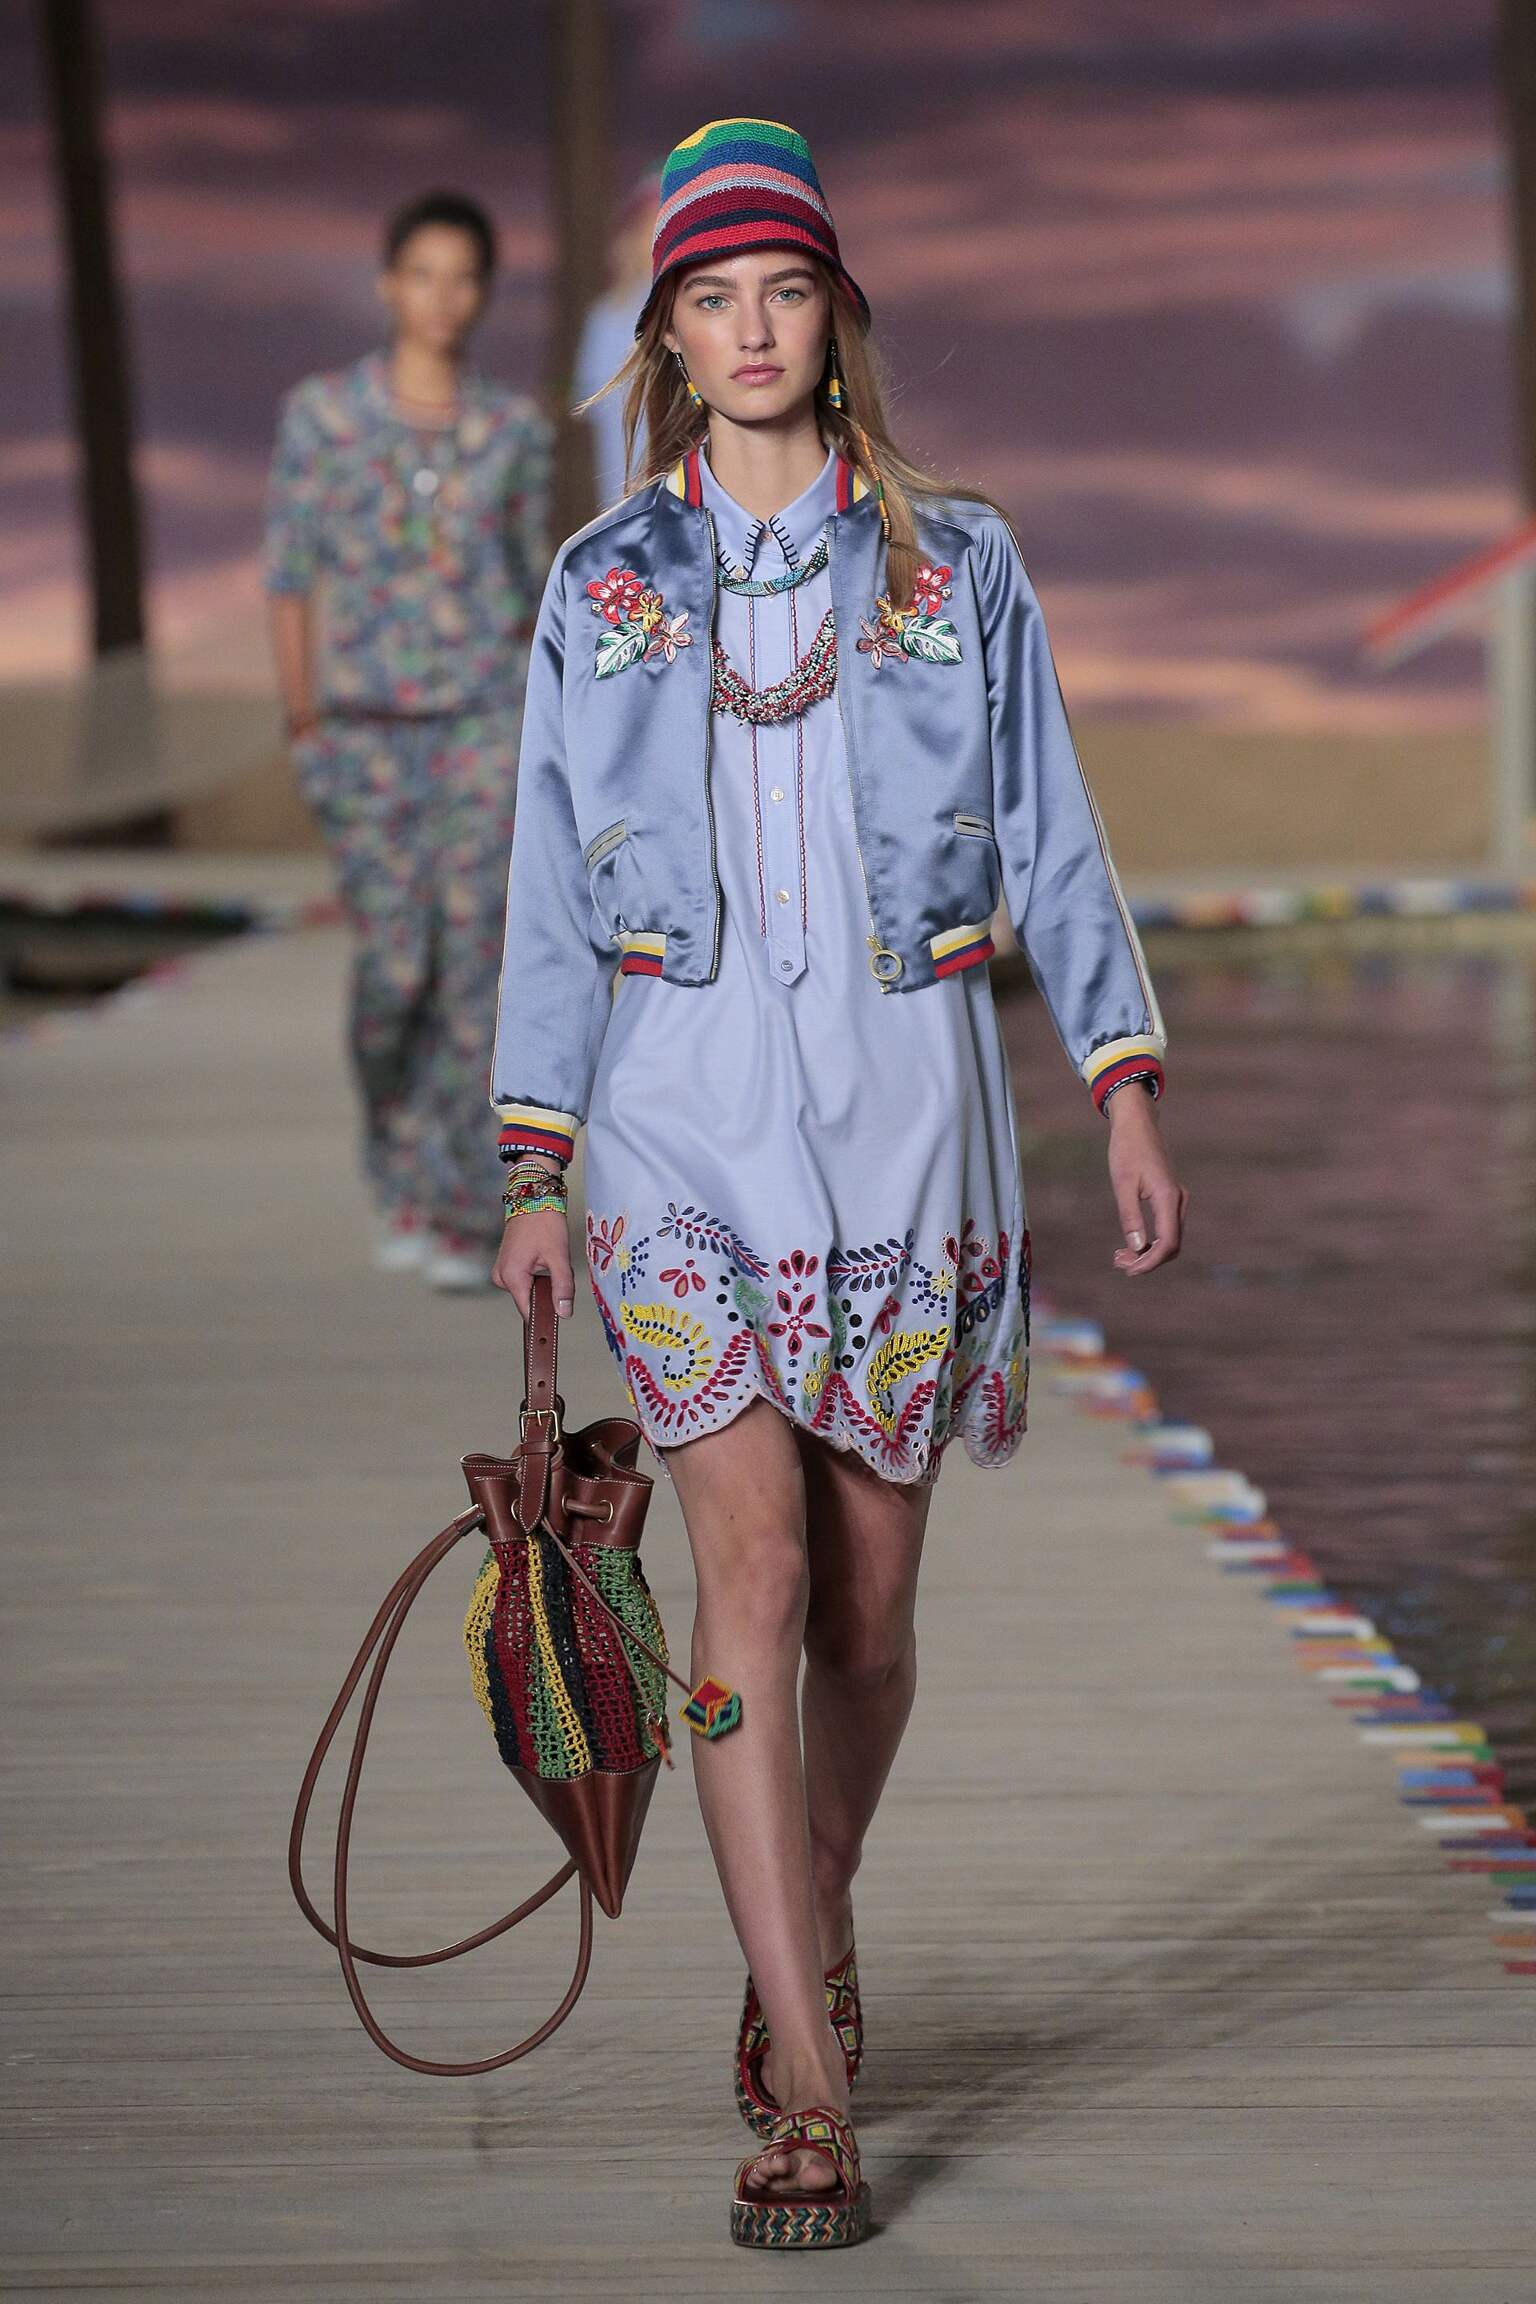 0efd6122d35 TOMMY HILFIGER SPRING SUMMER 2016 WOMEN S COLLECTION